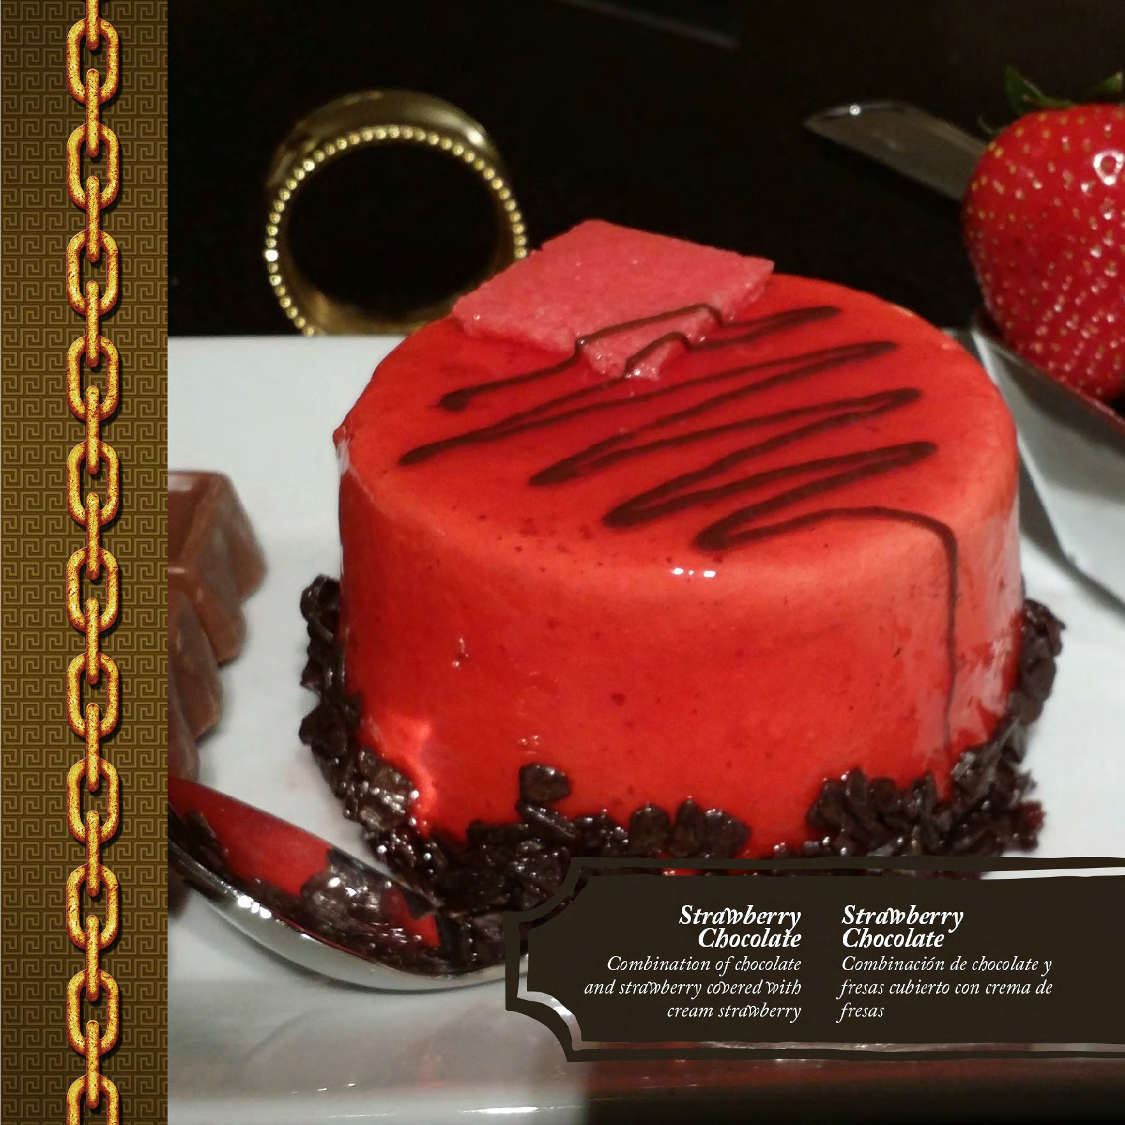 STRAWBERRY CHOCO